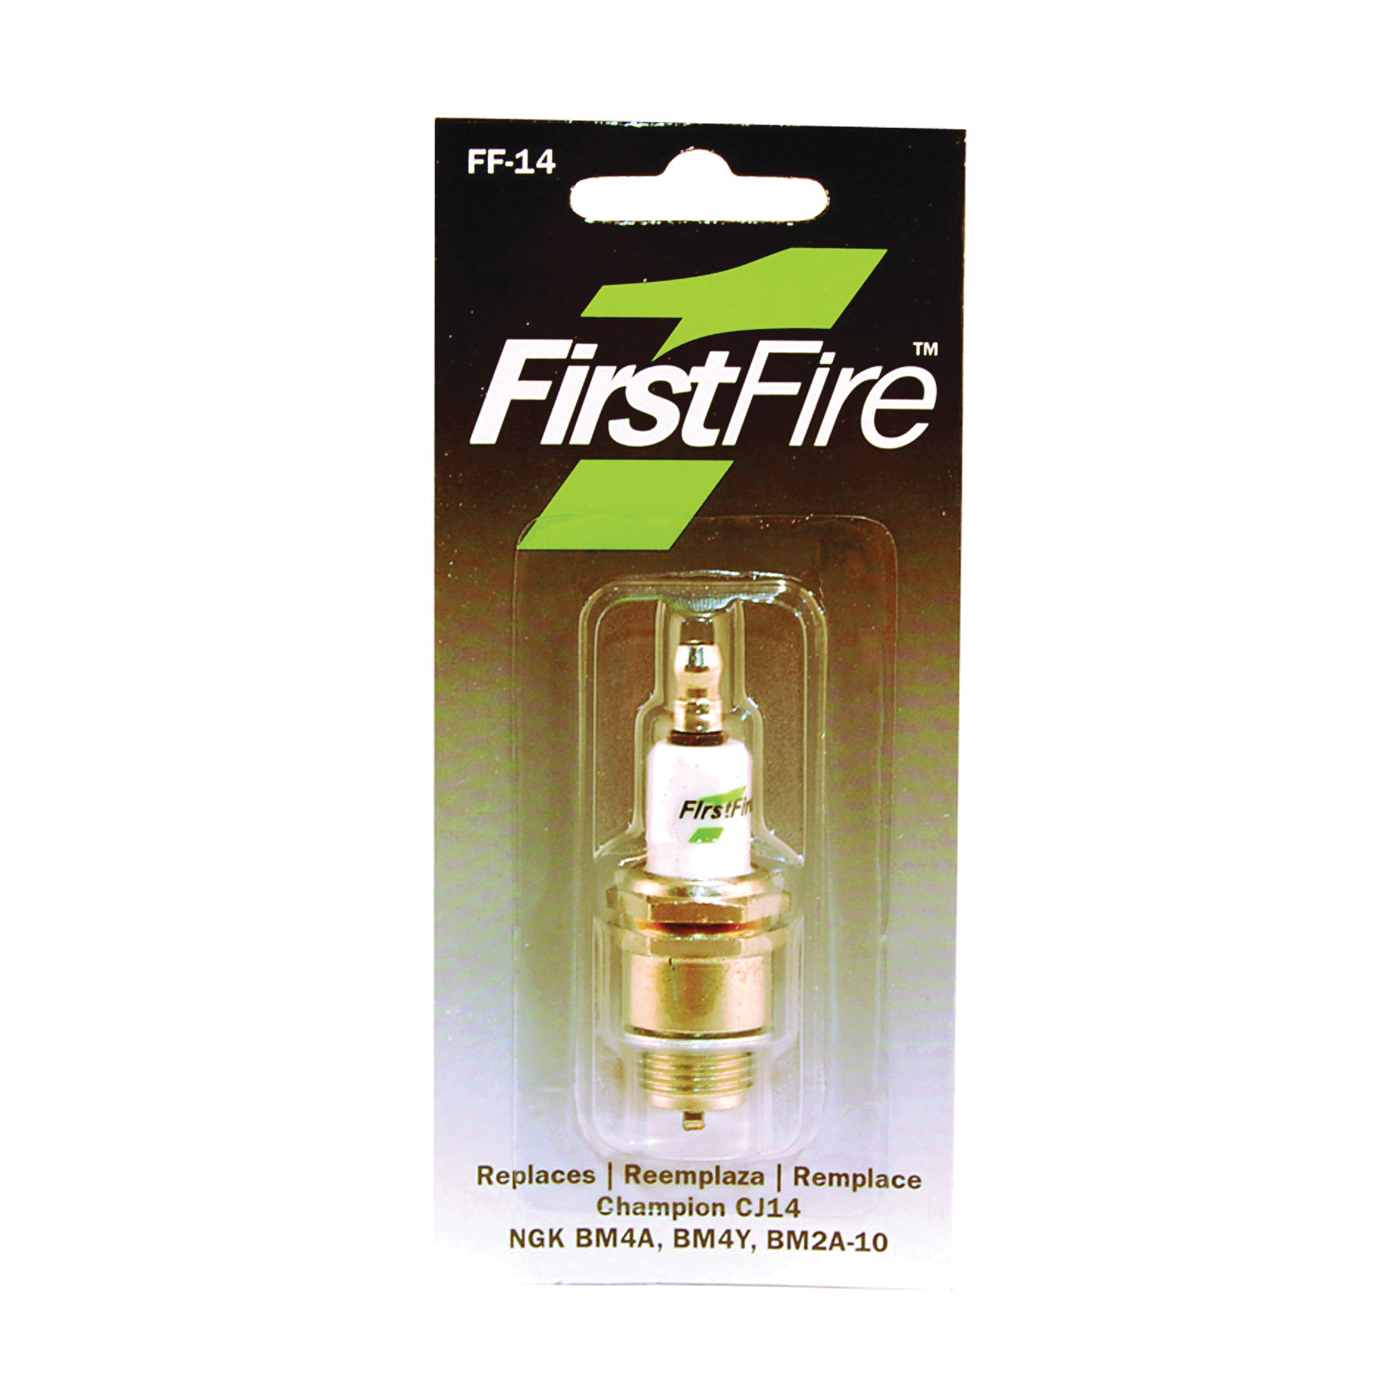 Picture of MTD FF-14 Spark Plug, 3/8 in Fill Gap, 0.551 in Thread, 13/16 in Hex